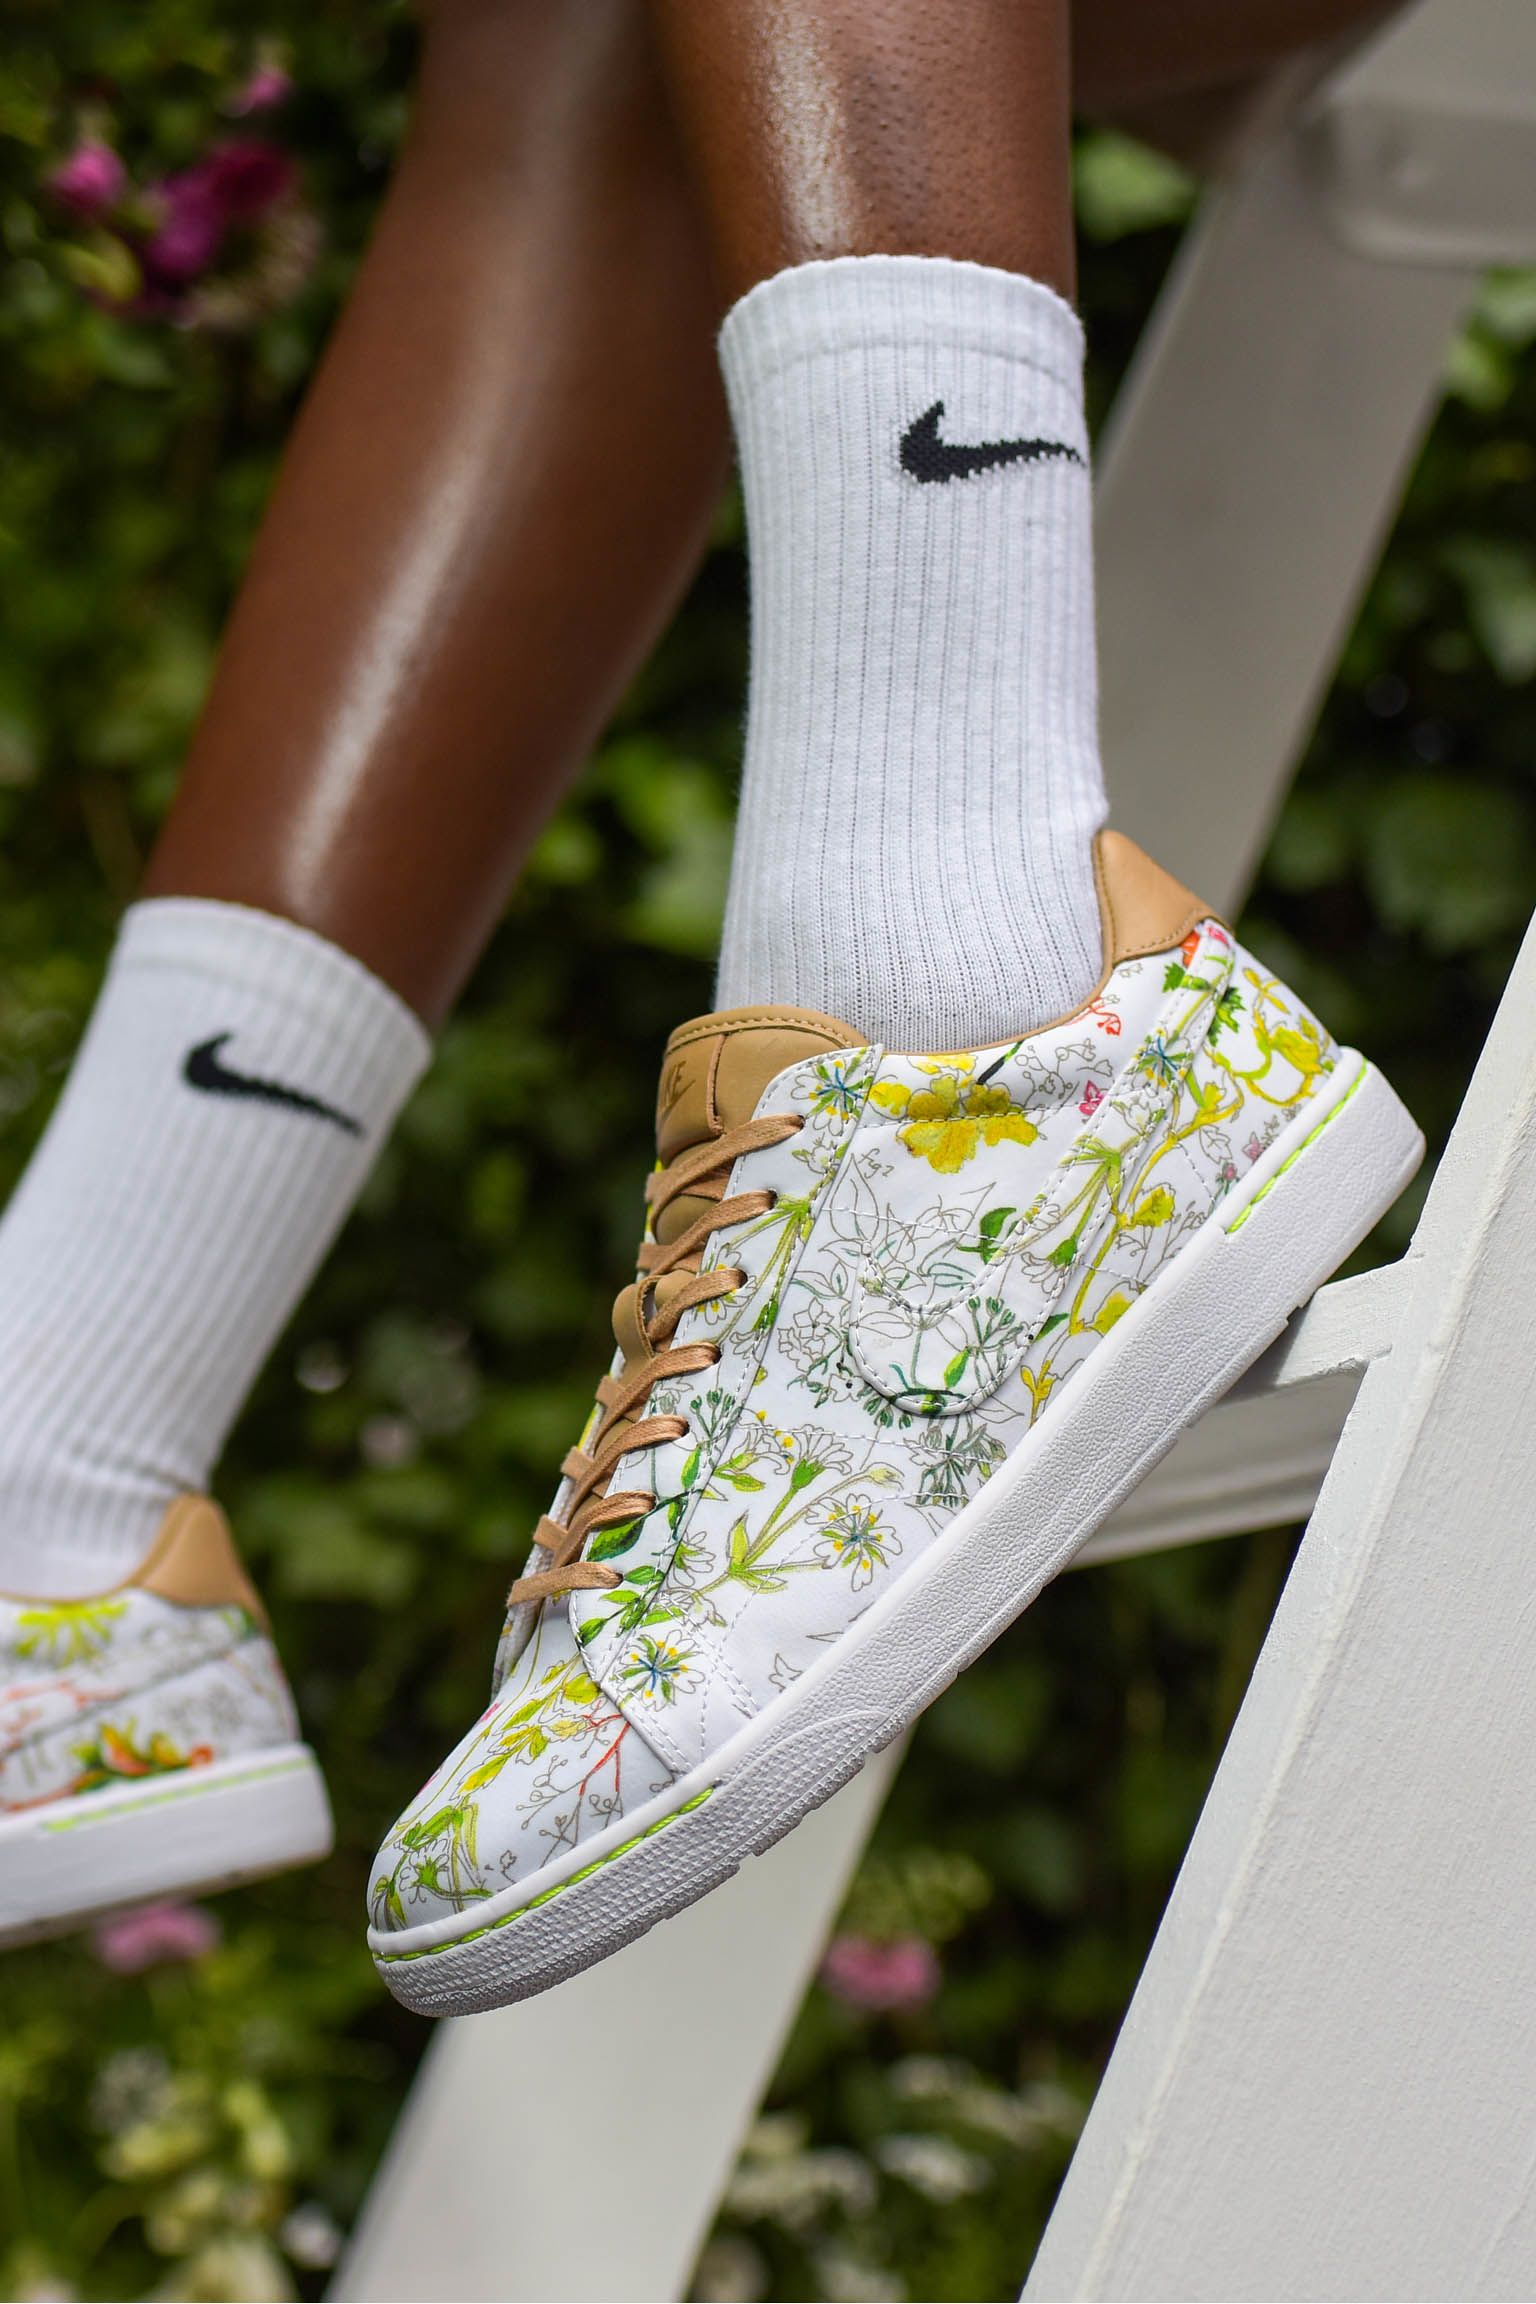 NikeCourt x Liberty collectie: Dawn Meadow